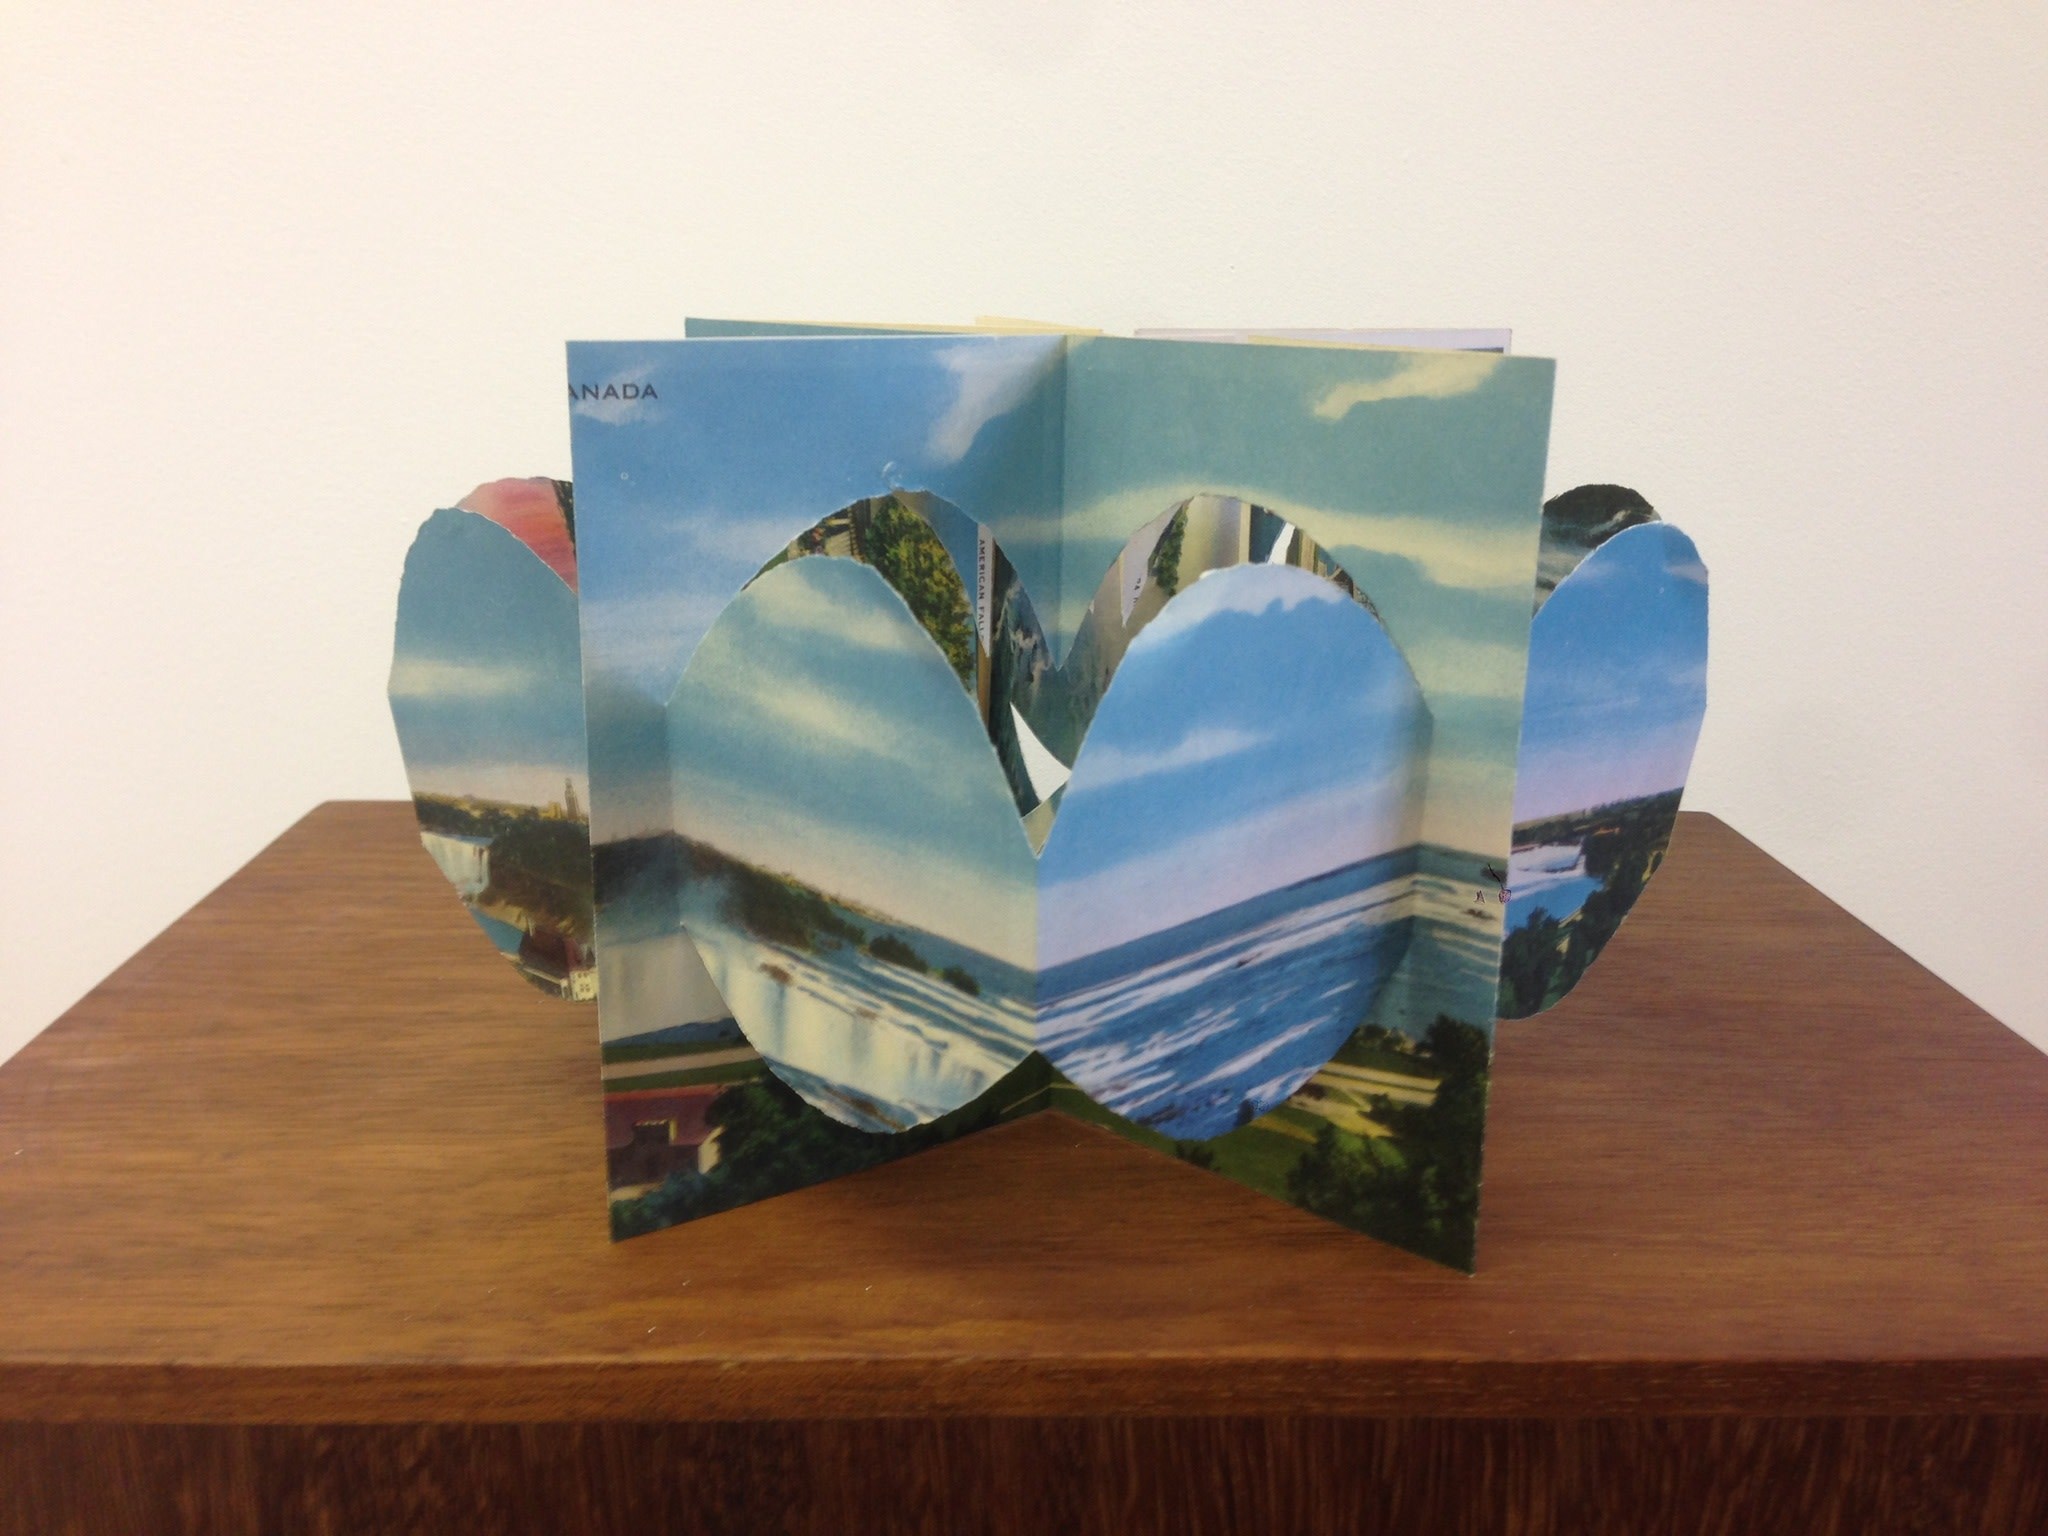 <span class=&#34;link fancybox-details-link&#34;><a href=&#34;/exhibitions/67/works/artworks8709/&#34;>View Detail Page</a></span><div class=&#34;artist&#34;><strong>Cath Campbell</strong></div><div class=&#34;title&#34;><em>Untitled (Niagara Falls 1)</em>, 2014</div><div class=&#34;medium&#34;>Paper</div><div class=&#34;dimensions&#34;>25 x 23 x 14 cm<br>9 7/8 x 9 1/8 x 5 1/2 in</div>